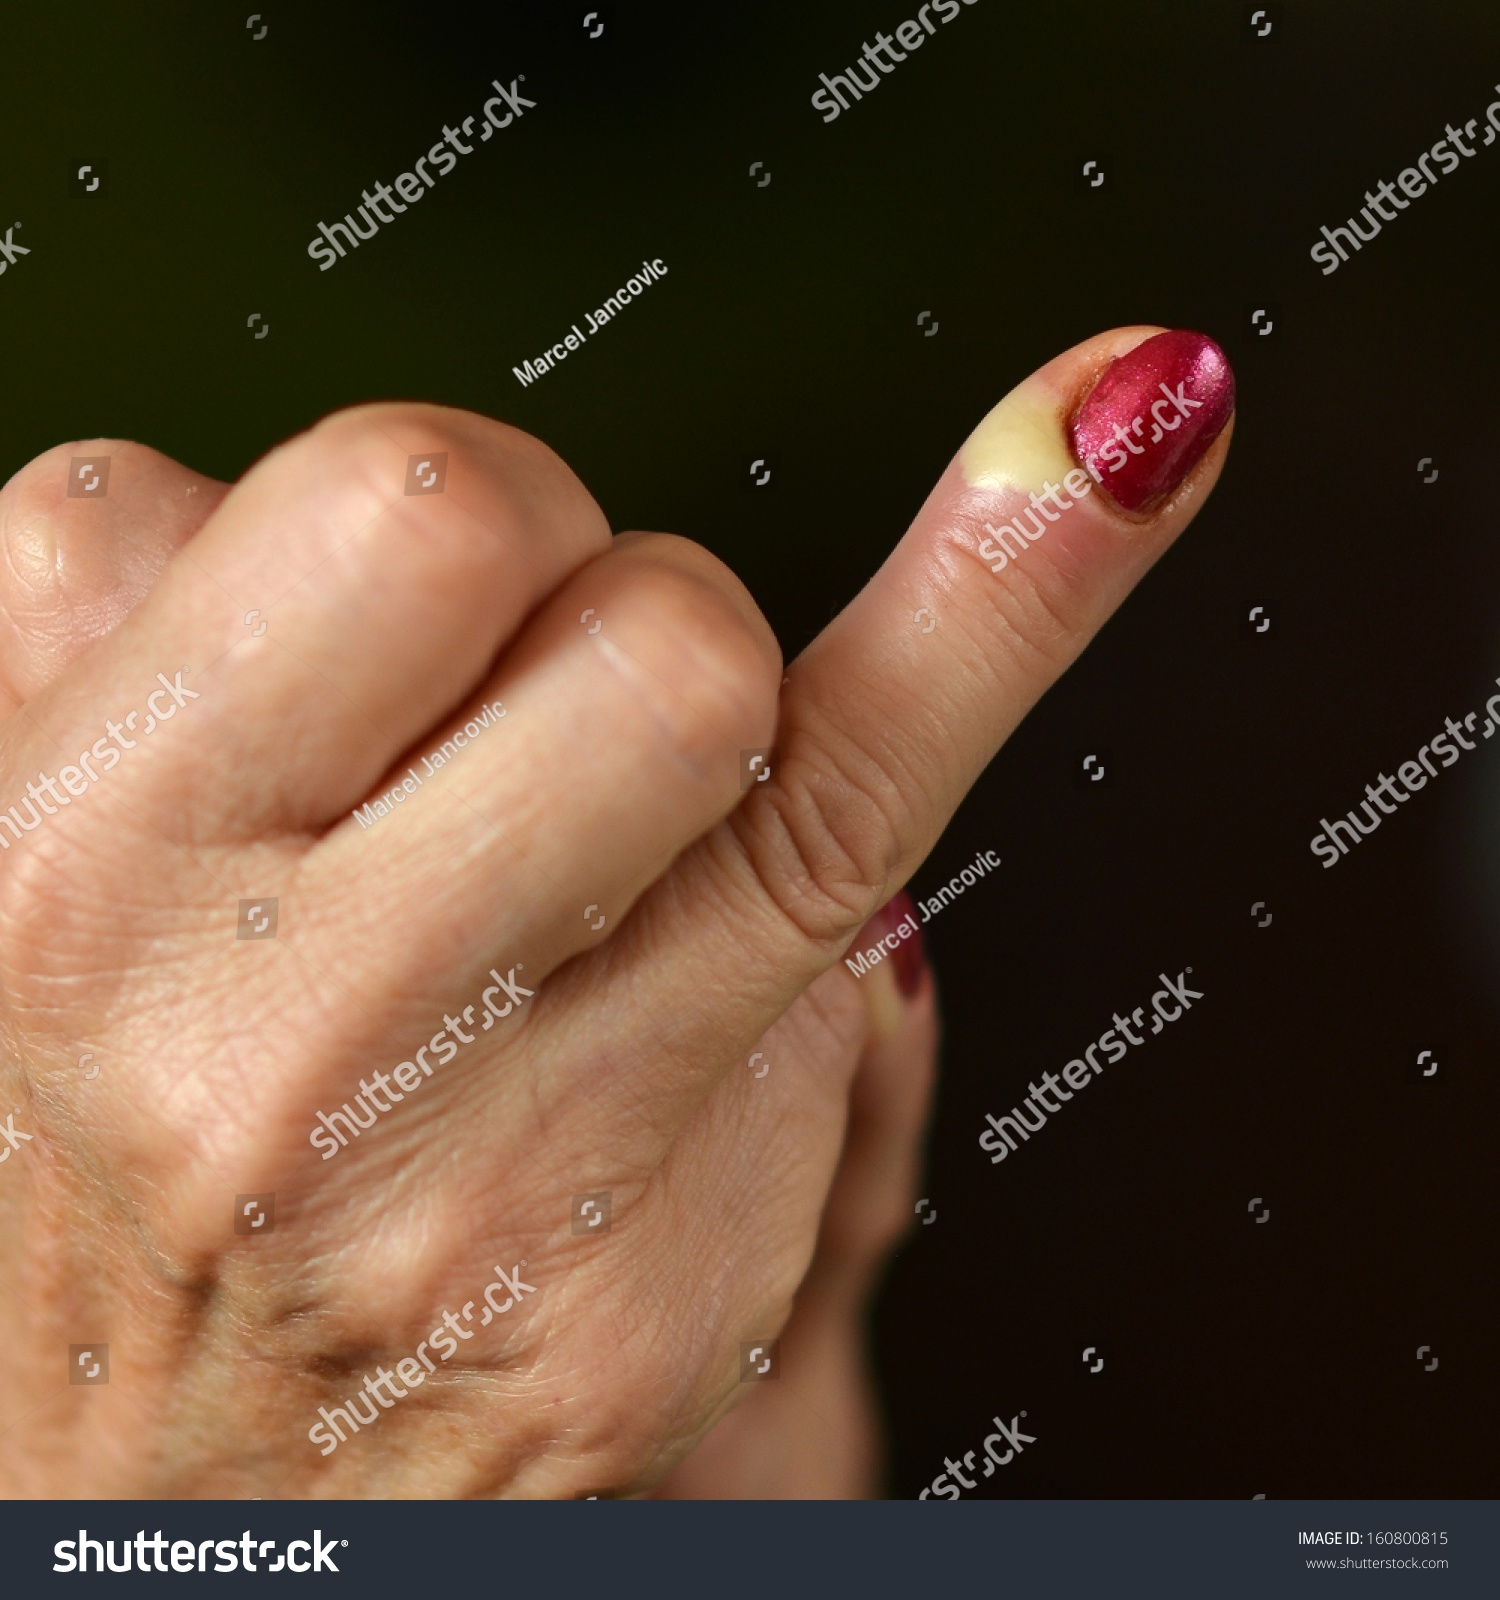 Pus Finger Stock Photo (Royalty Free) 160800815 - Shutterstock